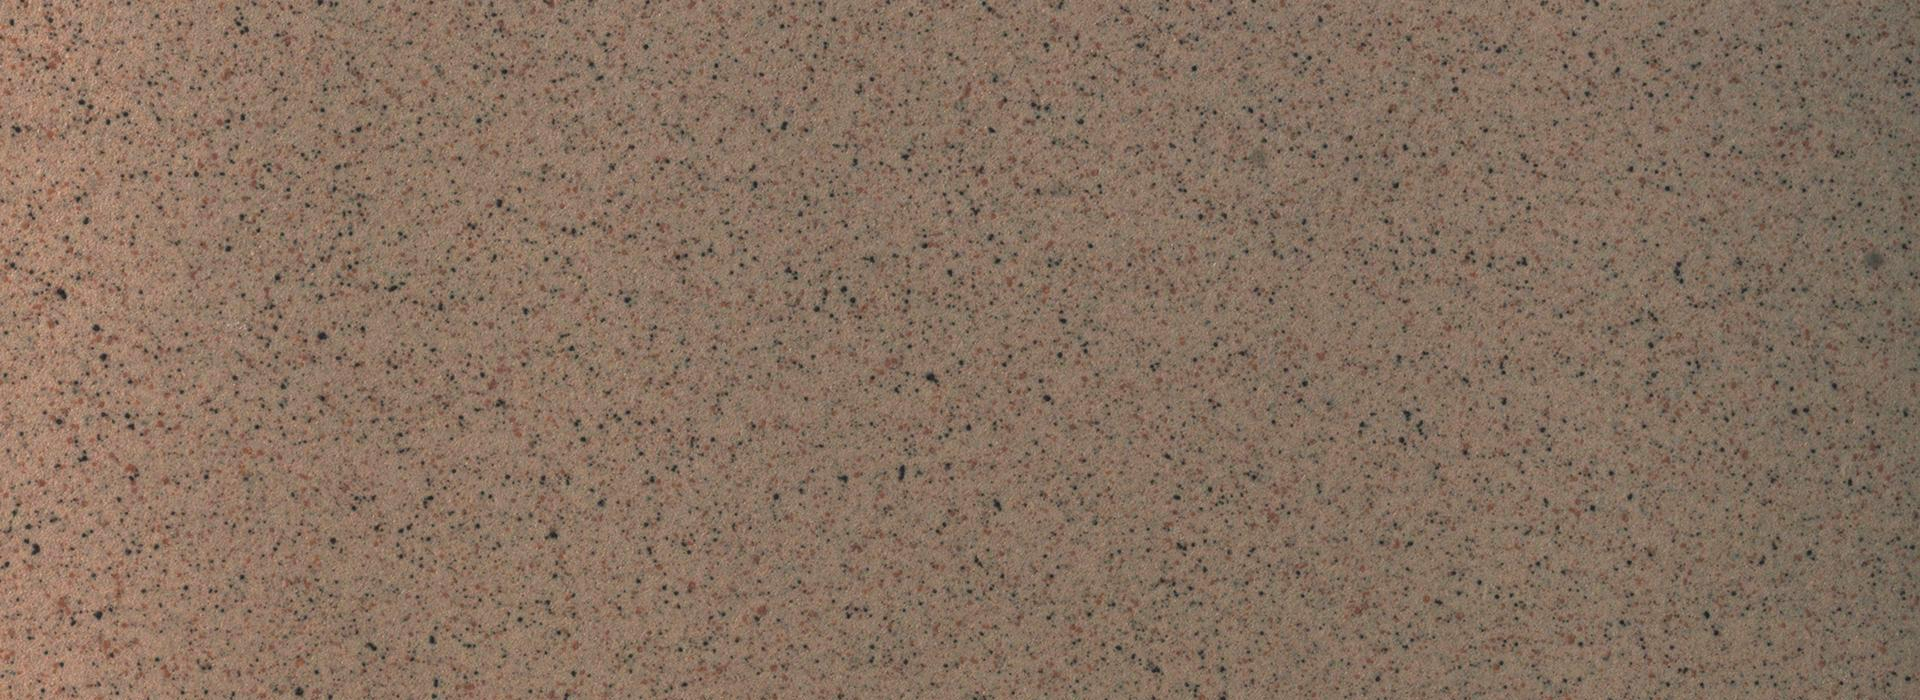 Granit classic granite like floor and wall tiles for interiors granit dailygadgetfo Image collections